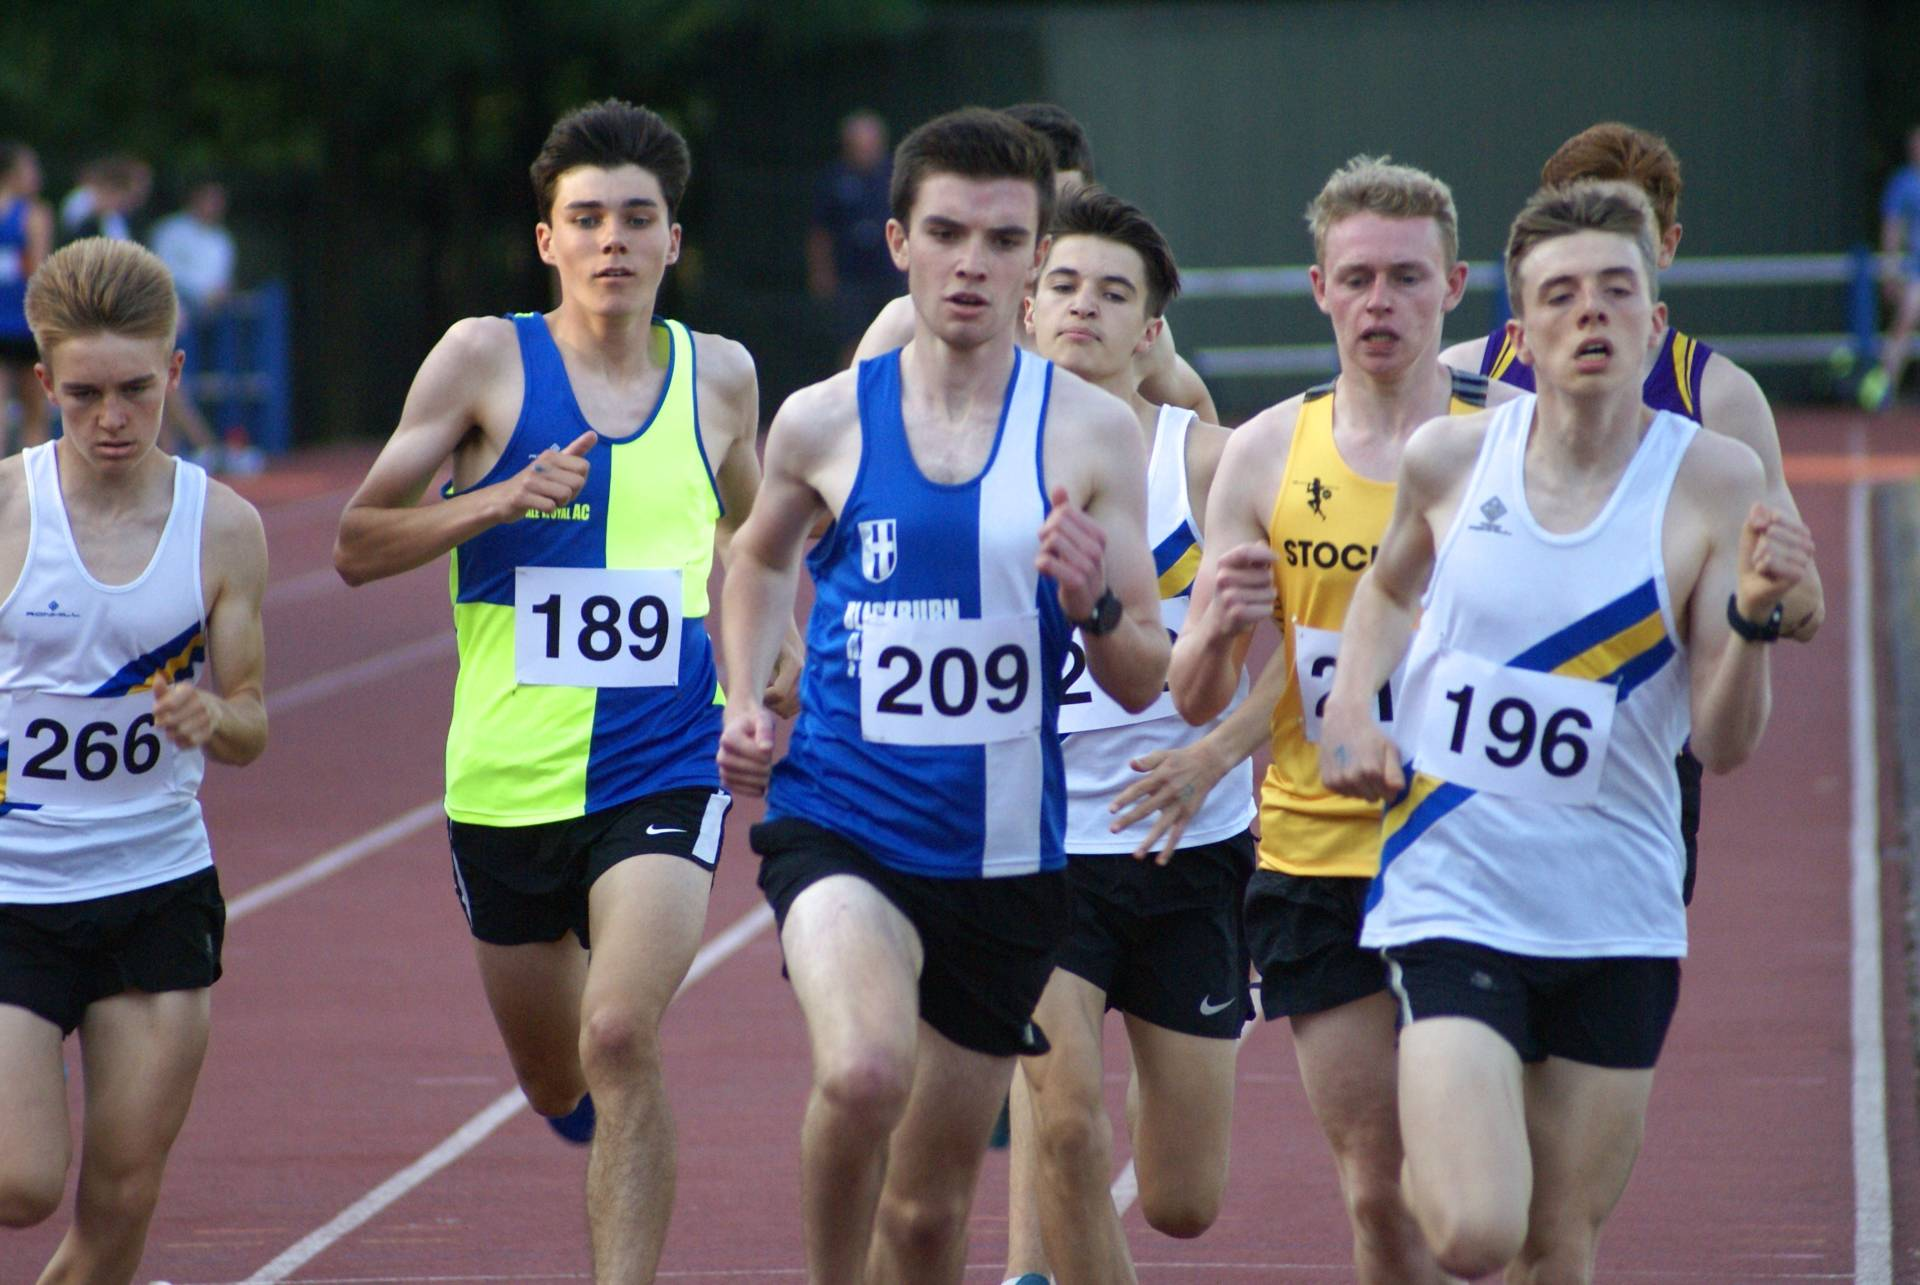 A win and new 1500m PB for James & New 1500m PB's for Sam and Harry at Trafford – Tony Wins Double Gold & sets two new PB's at Northern Masters Championships